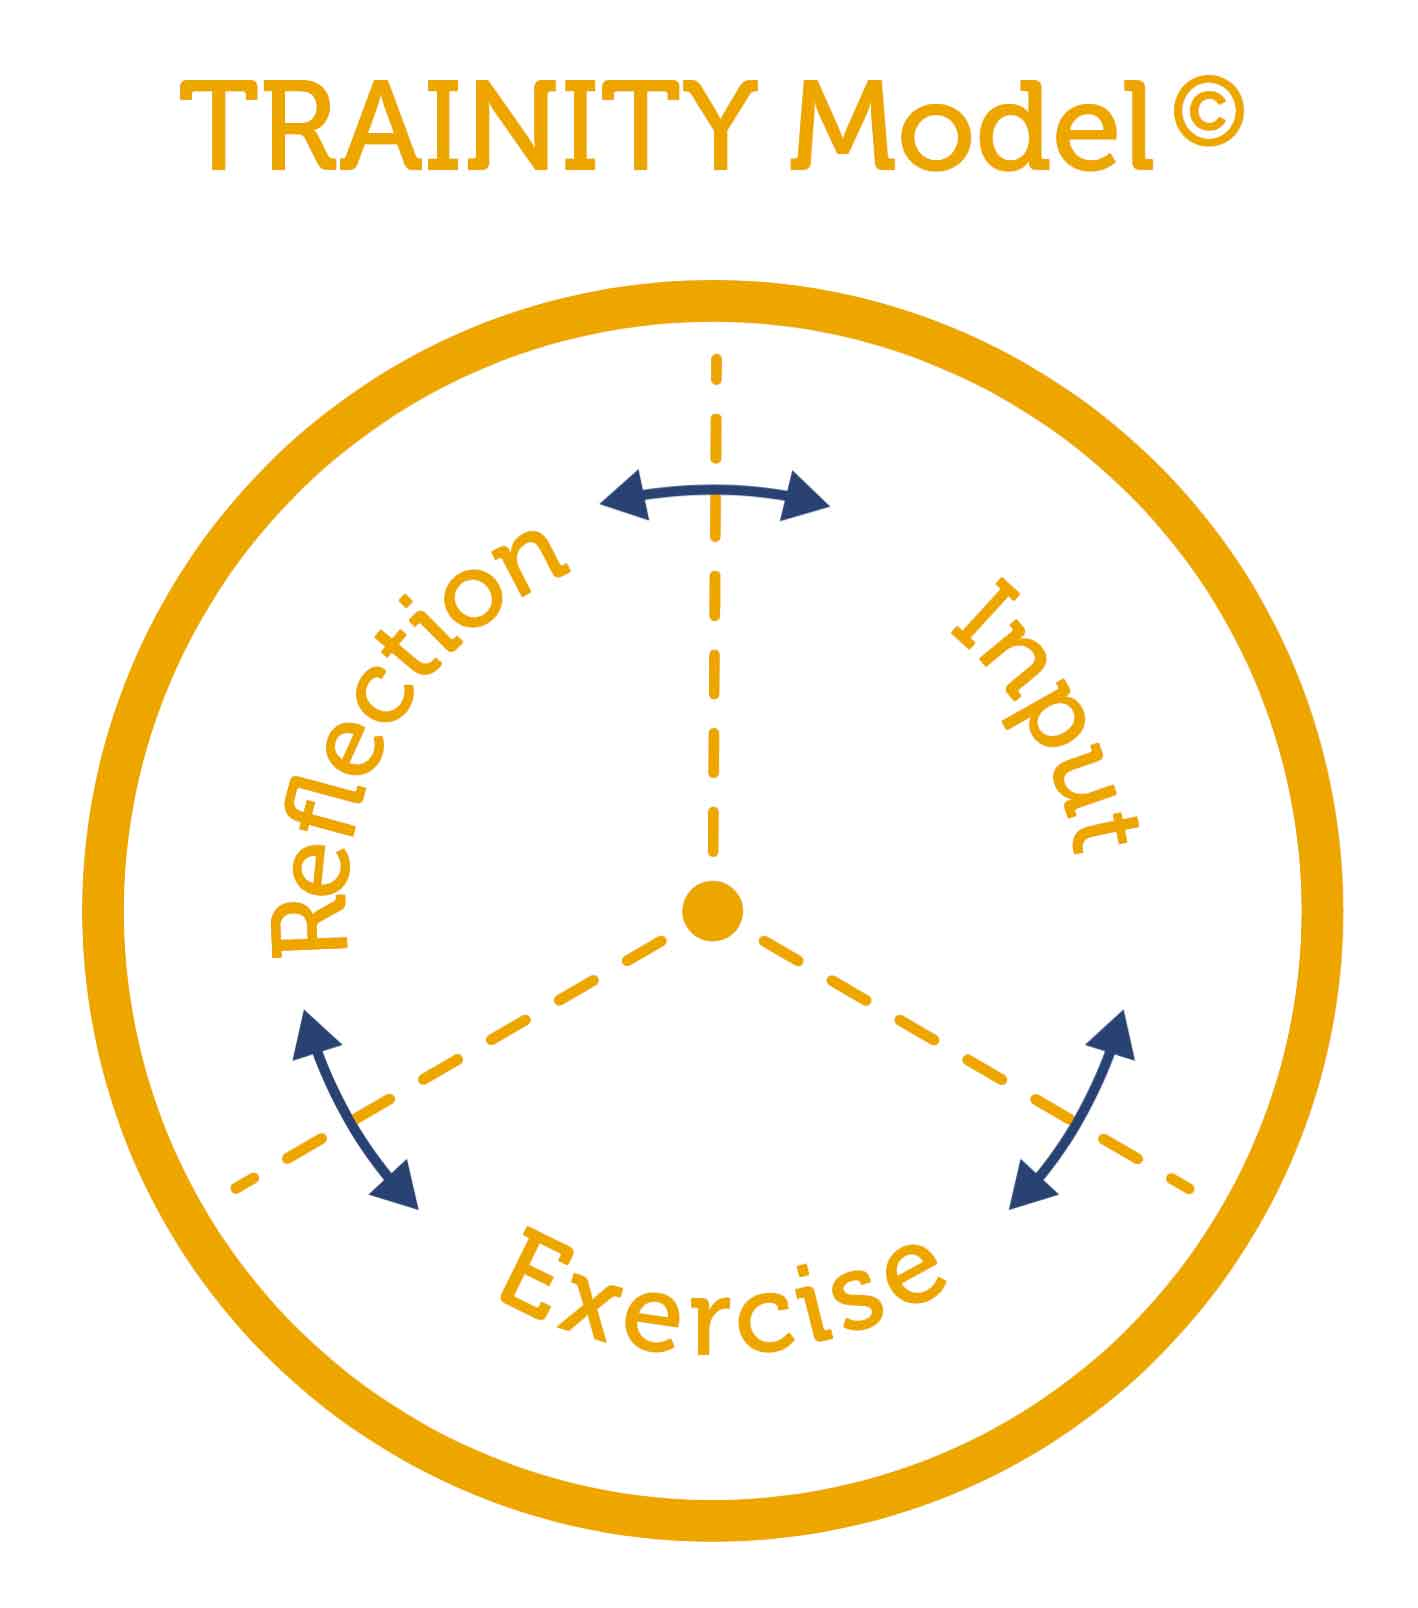 Model for successful training sessions - the trainity model